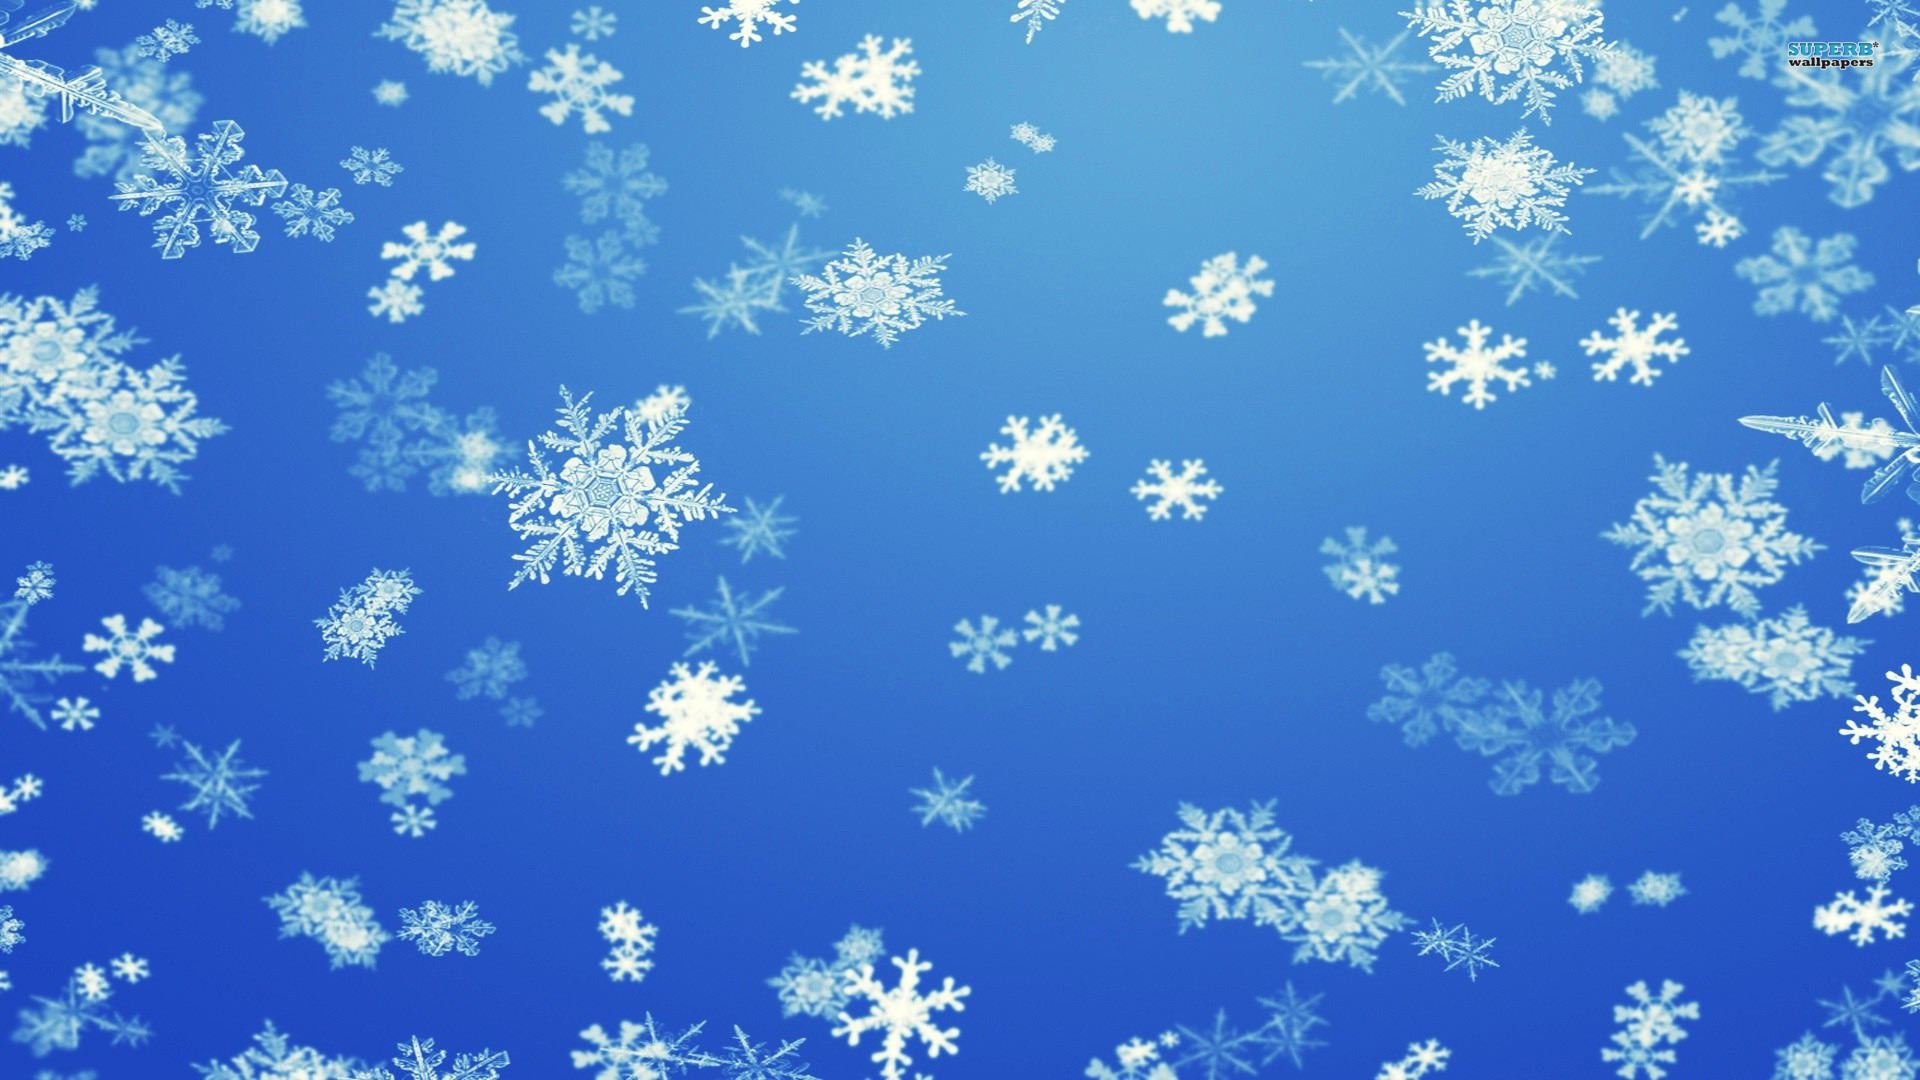 blue beautiful snowflake powerpoint template download #1645